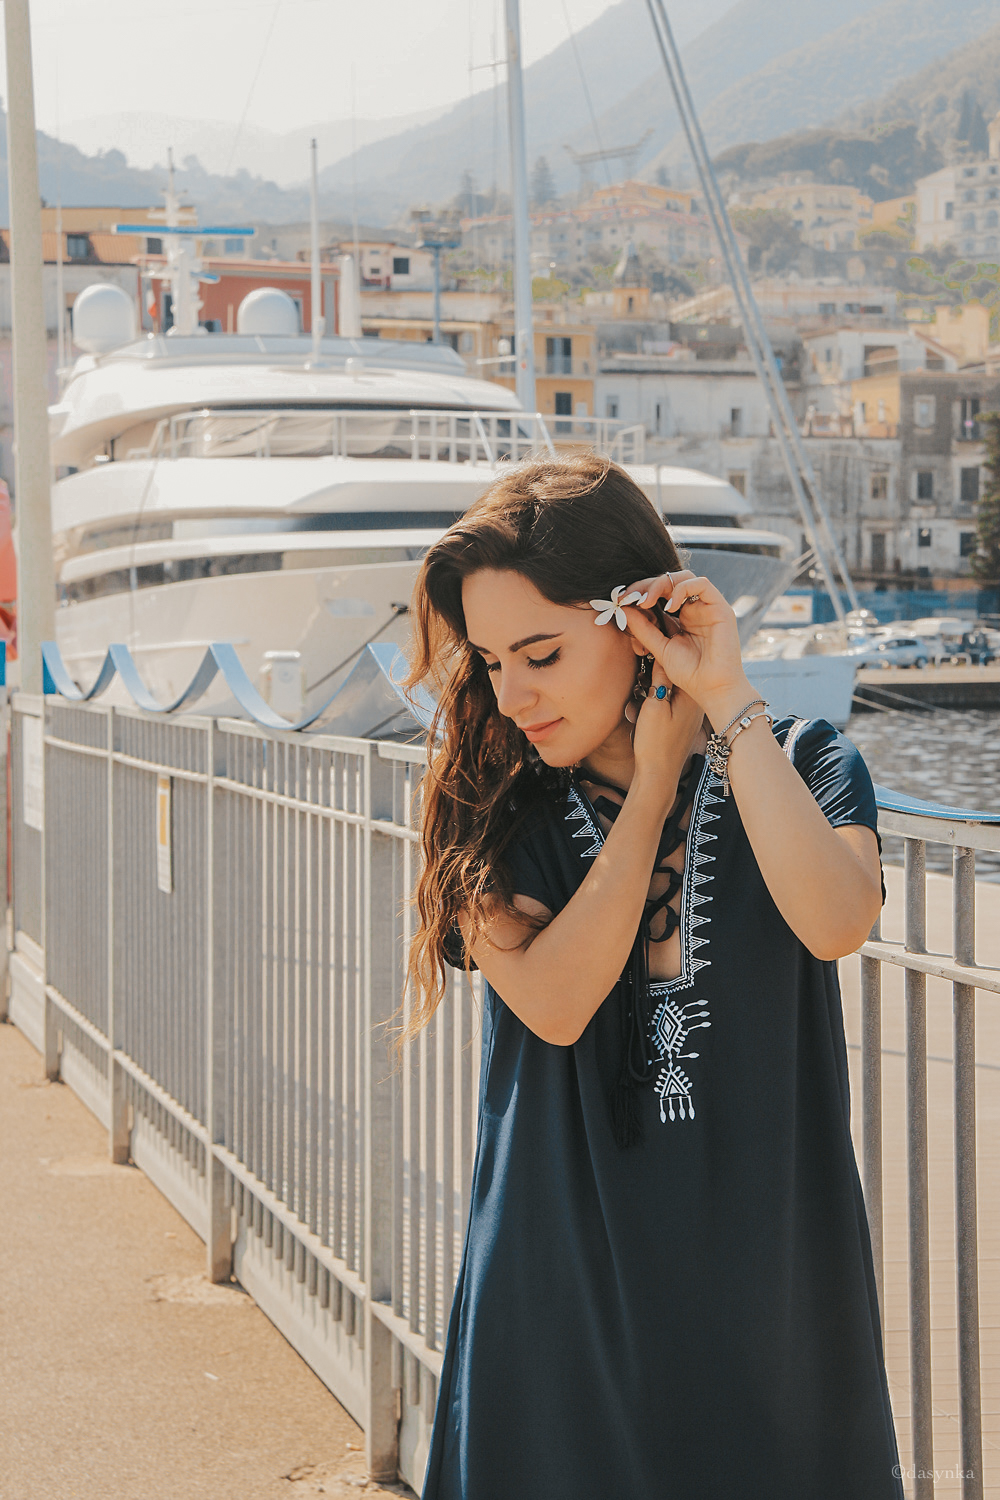 dasynka-fashion-blog-blogger-influencer-inspiration-shooting-model-globettrotter-travel-girl-lookbook-instagram-long-hair-street-style-casual-italy-lifestyle-look-outfit-poses-tee-dress-blue-sea-casual-inspired-inspo